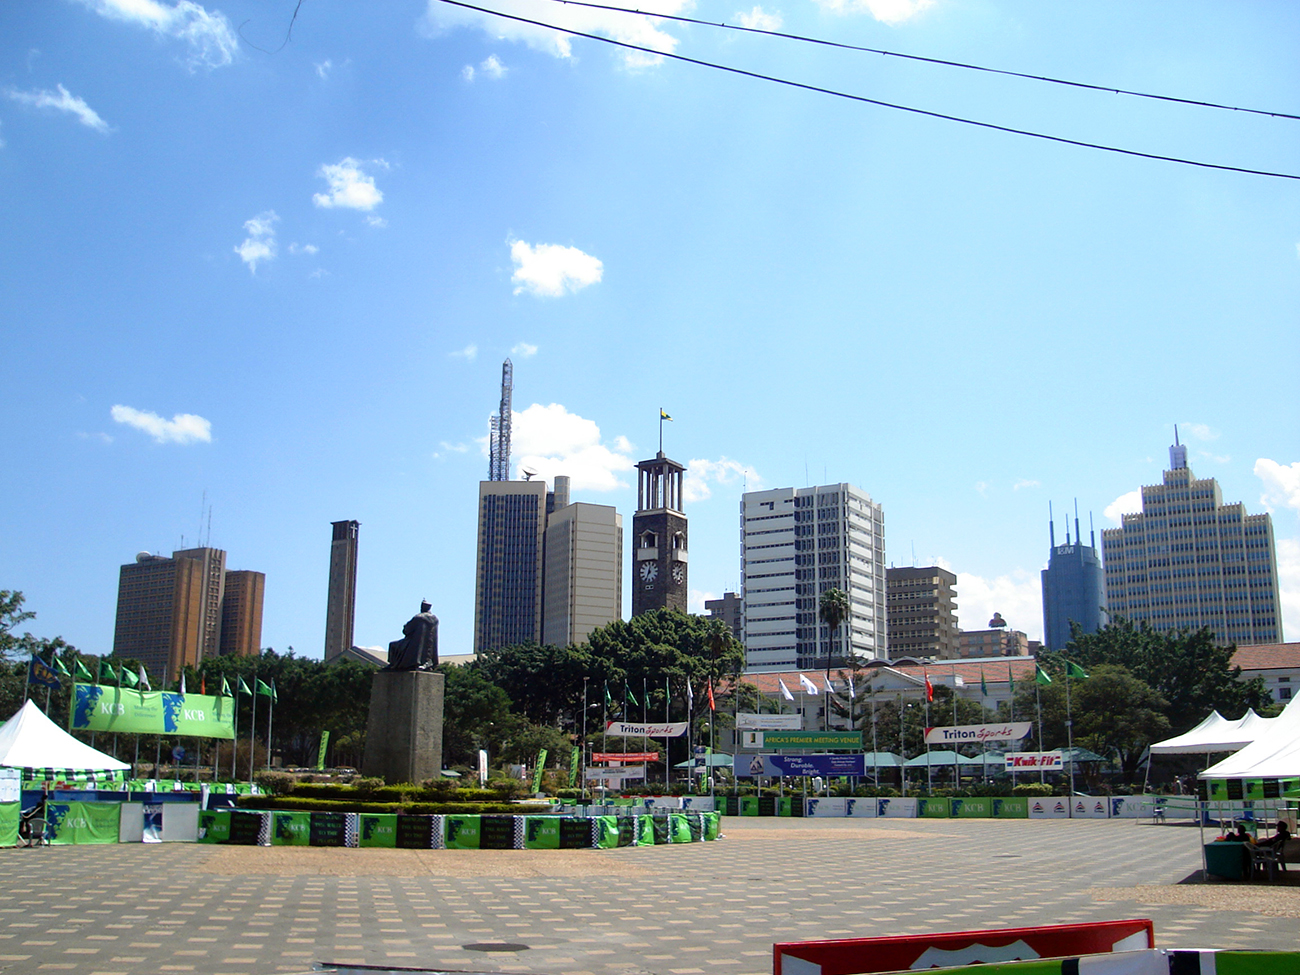 A_view_of_Nairobi_from_the_Kenyatta_International_Conference_Centre.jpg